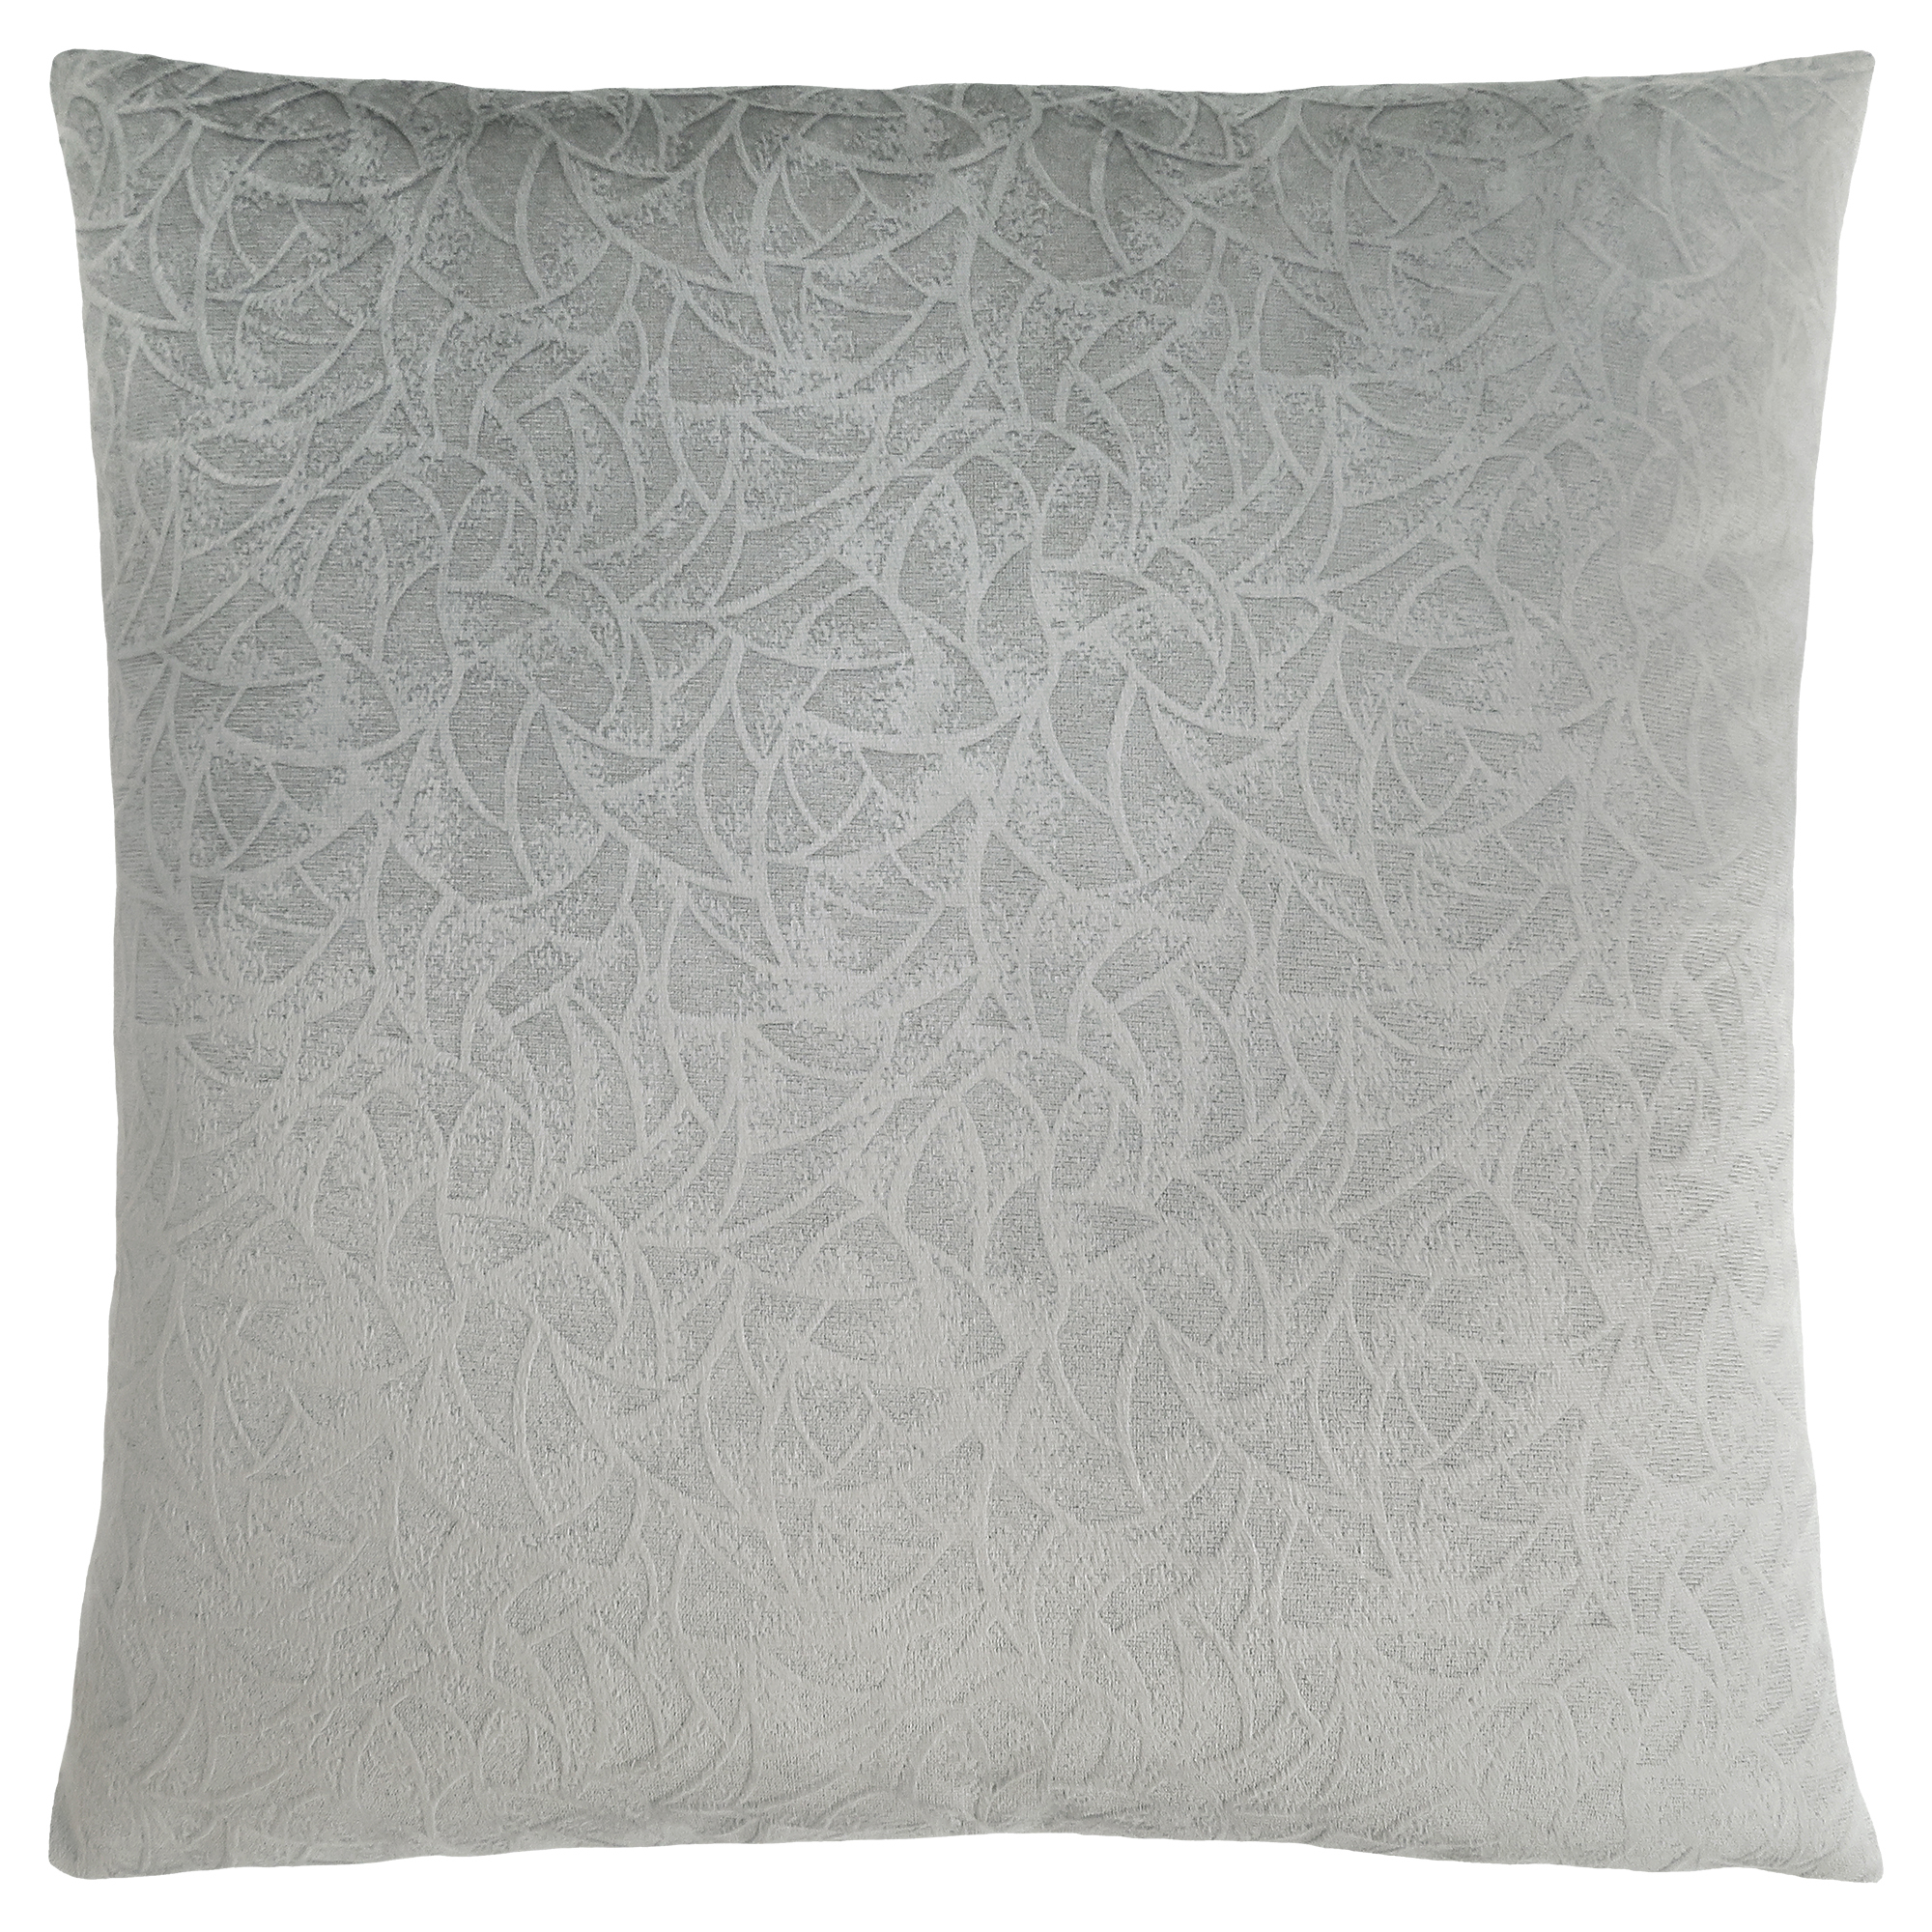 "PILLOW - 18""X 18"" / LIGHT GREY FLORAL VELVET / 1PC"